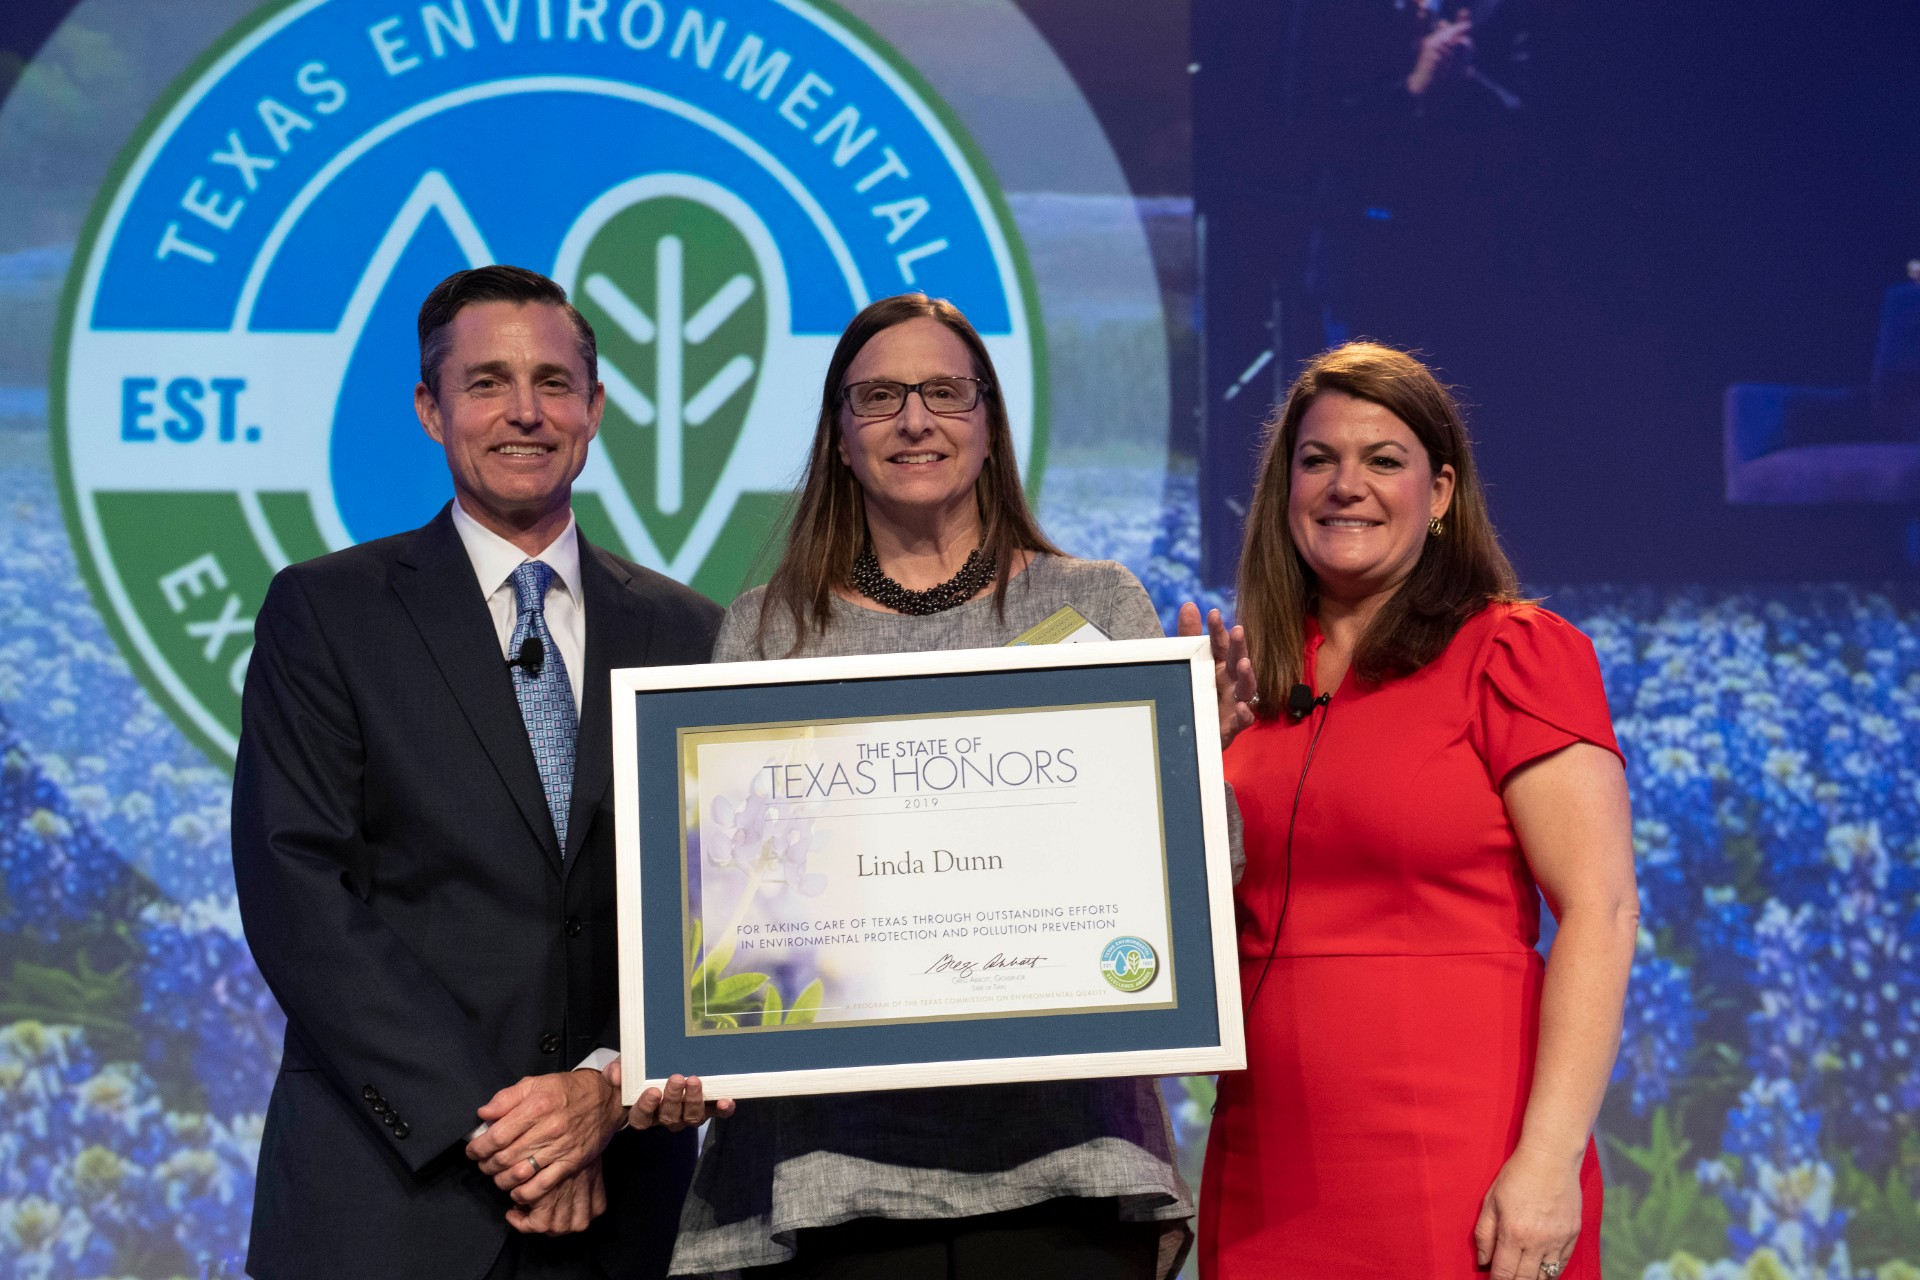 2019 Environmental Educator of the Year Winner